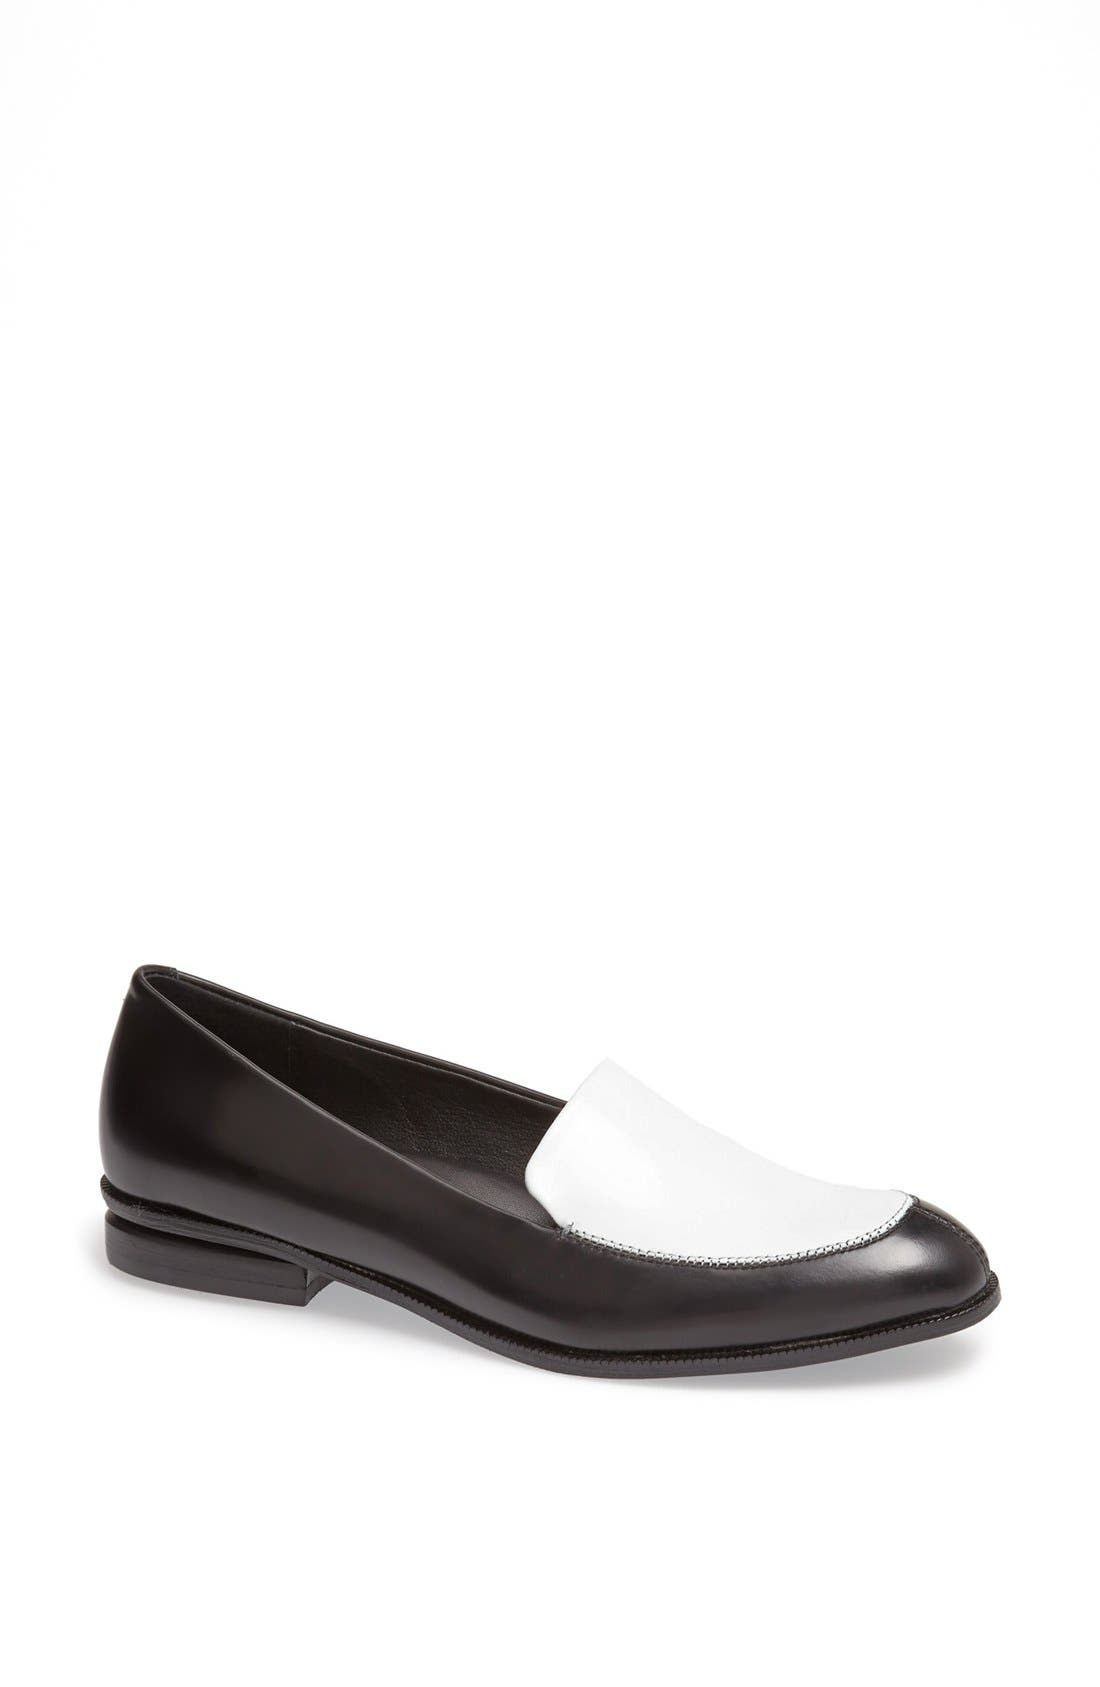 Alternate Image 1 Selected - Kenneth Cole New York 'Hudson' Leather Flat